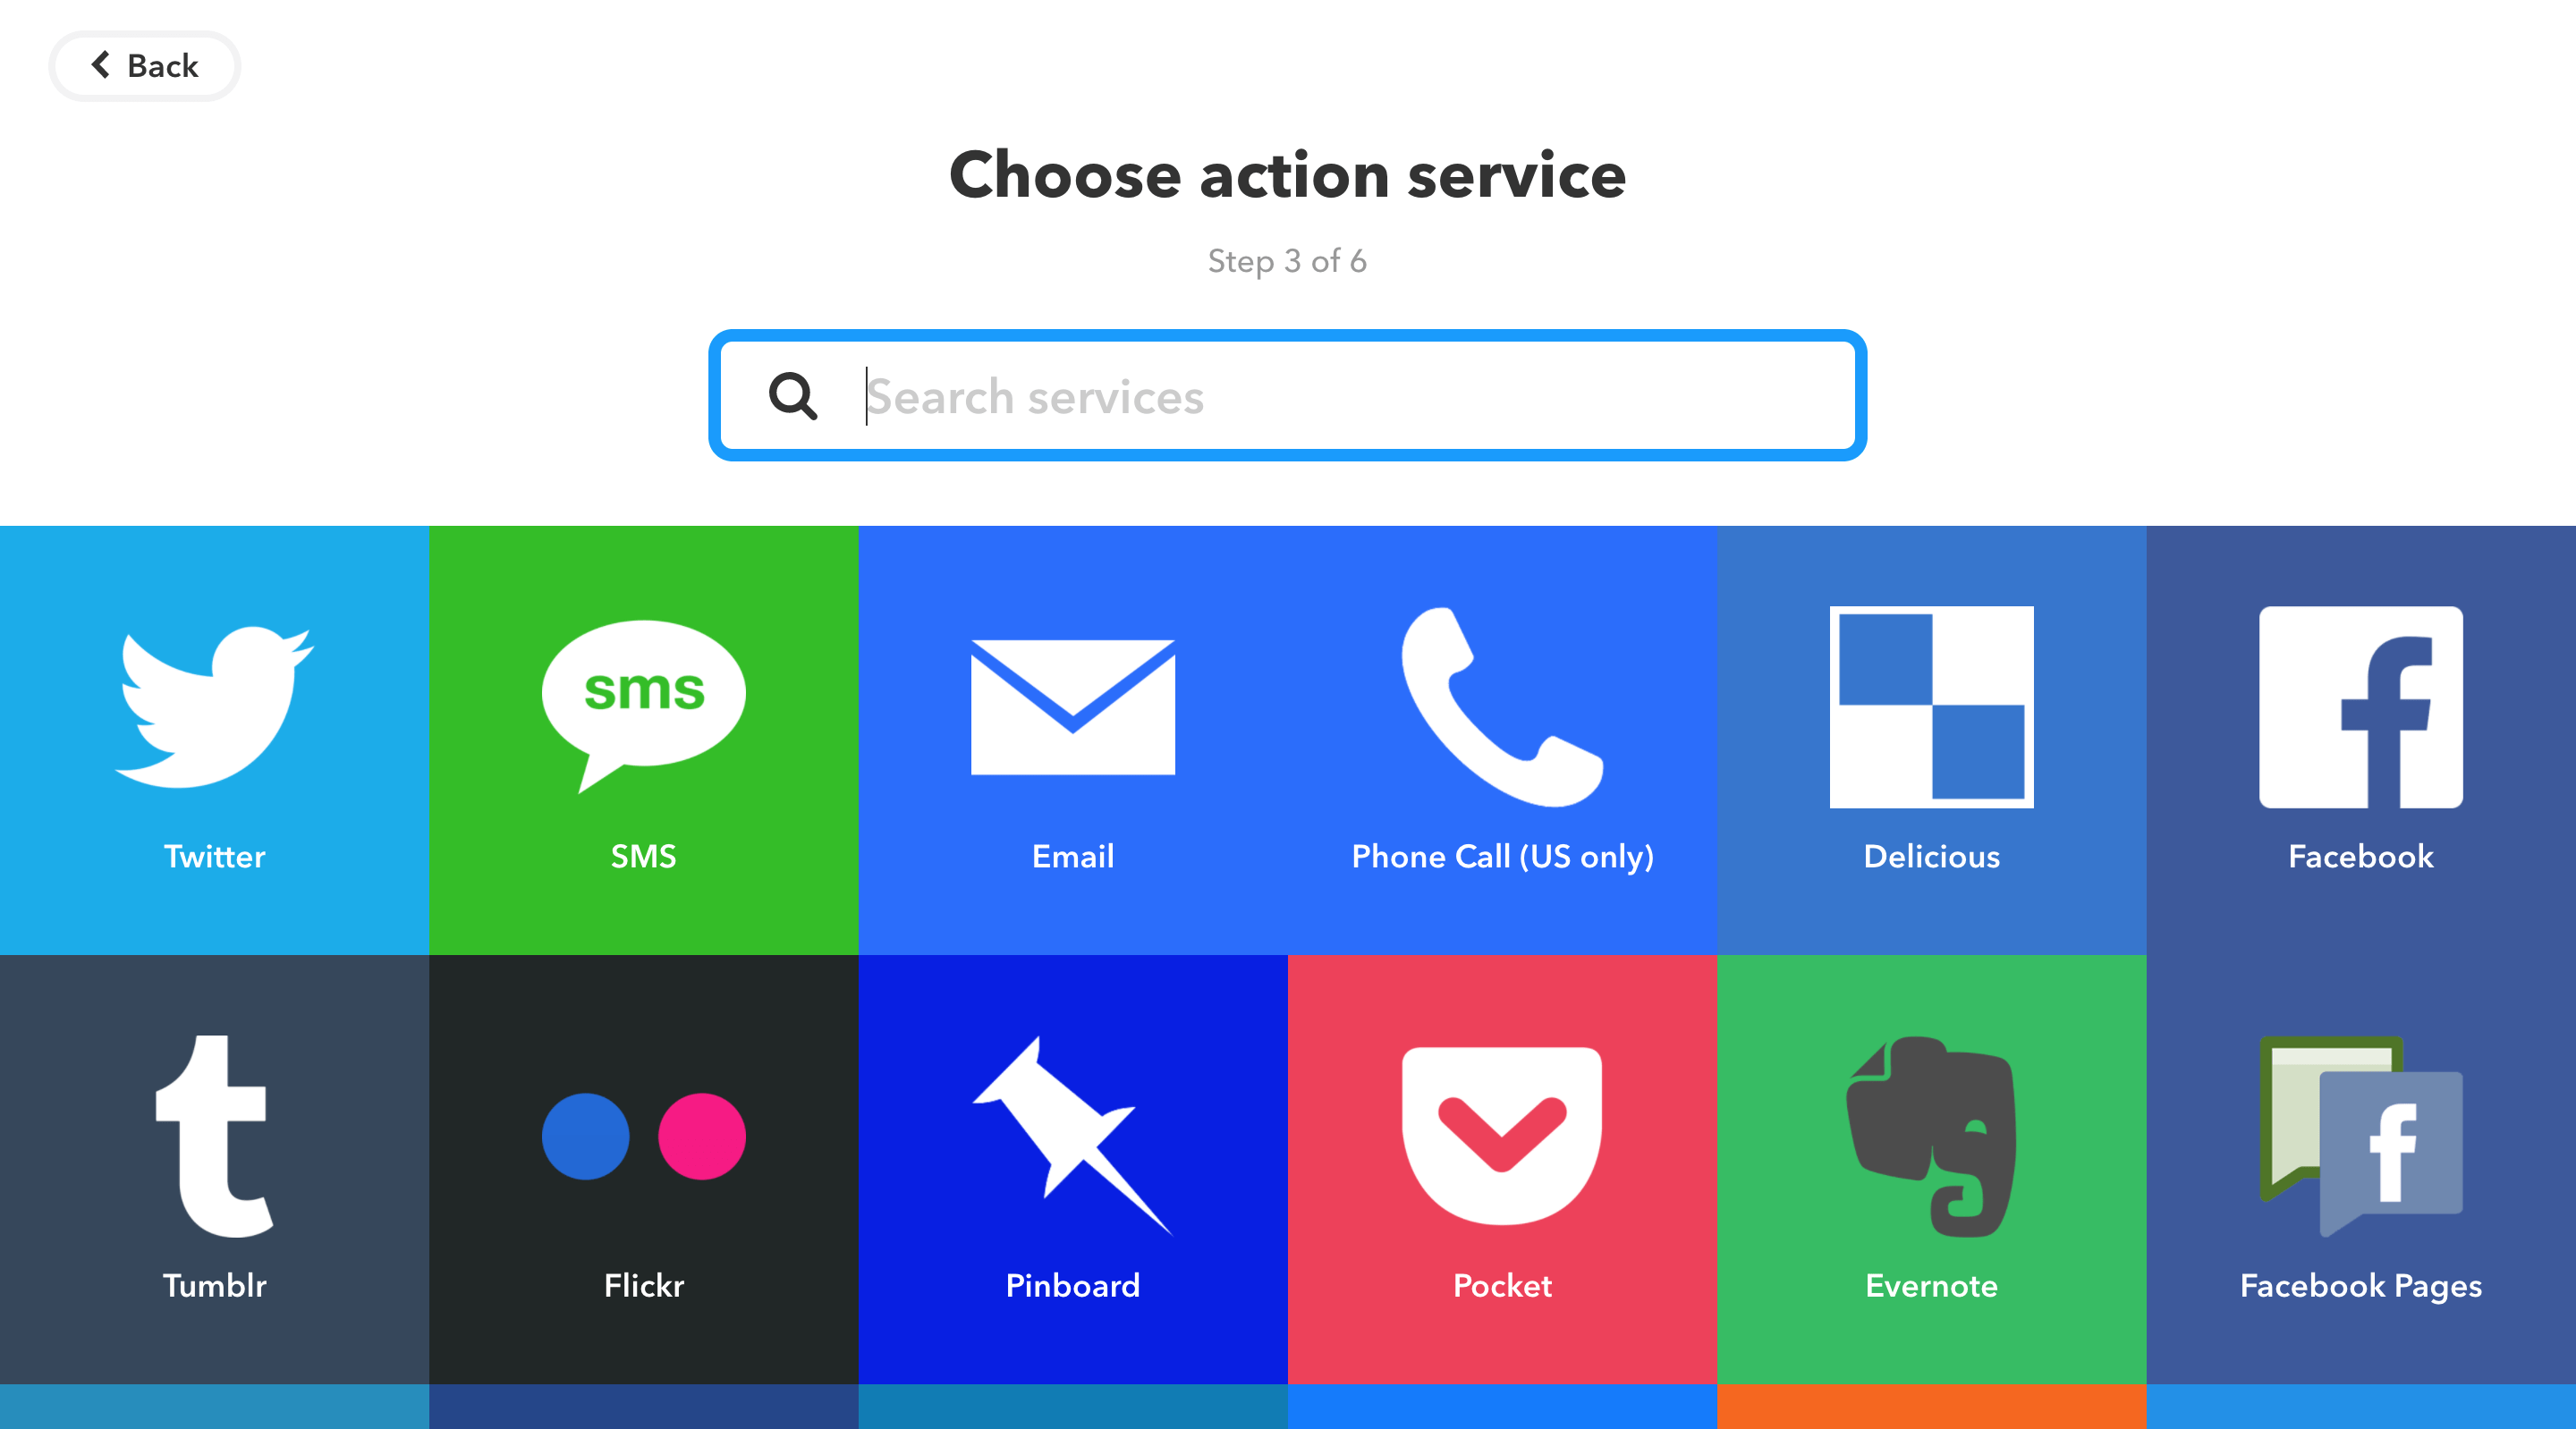 Choose action service